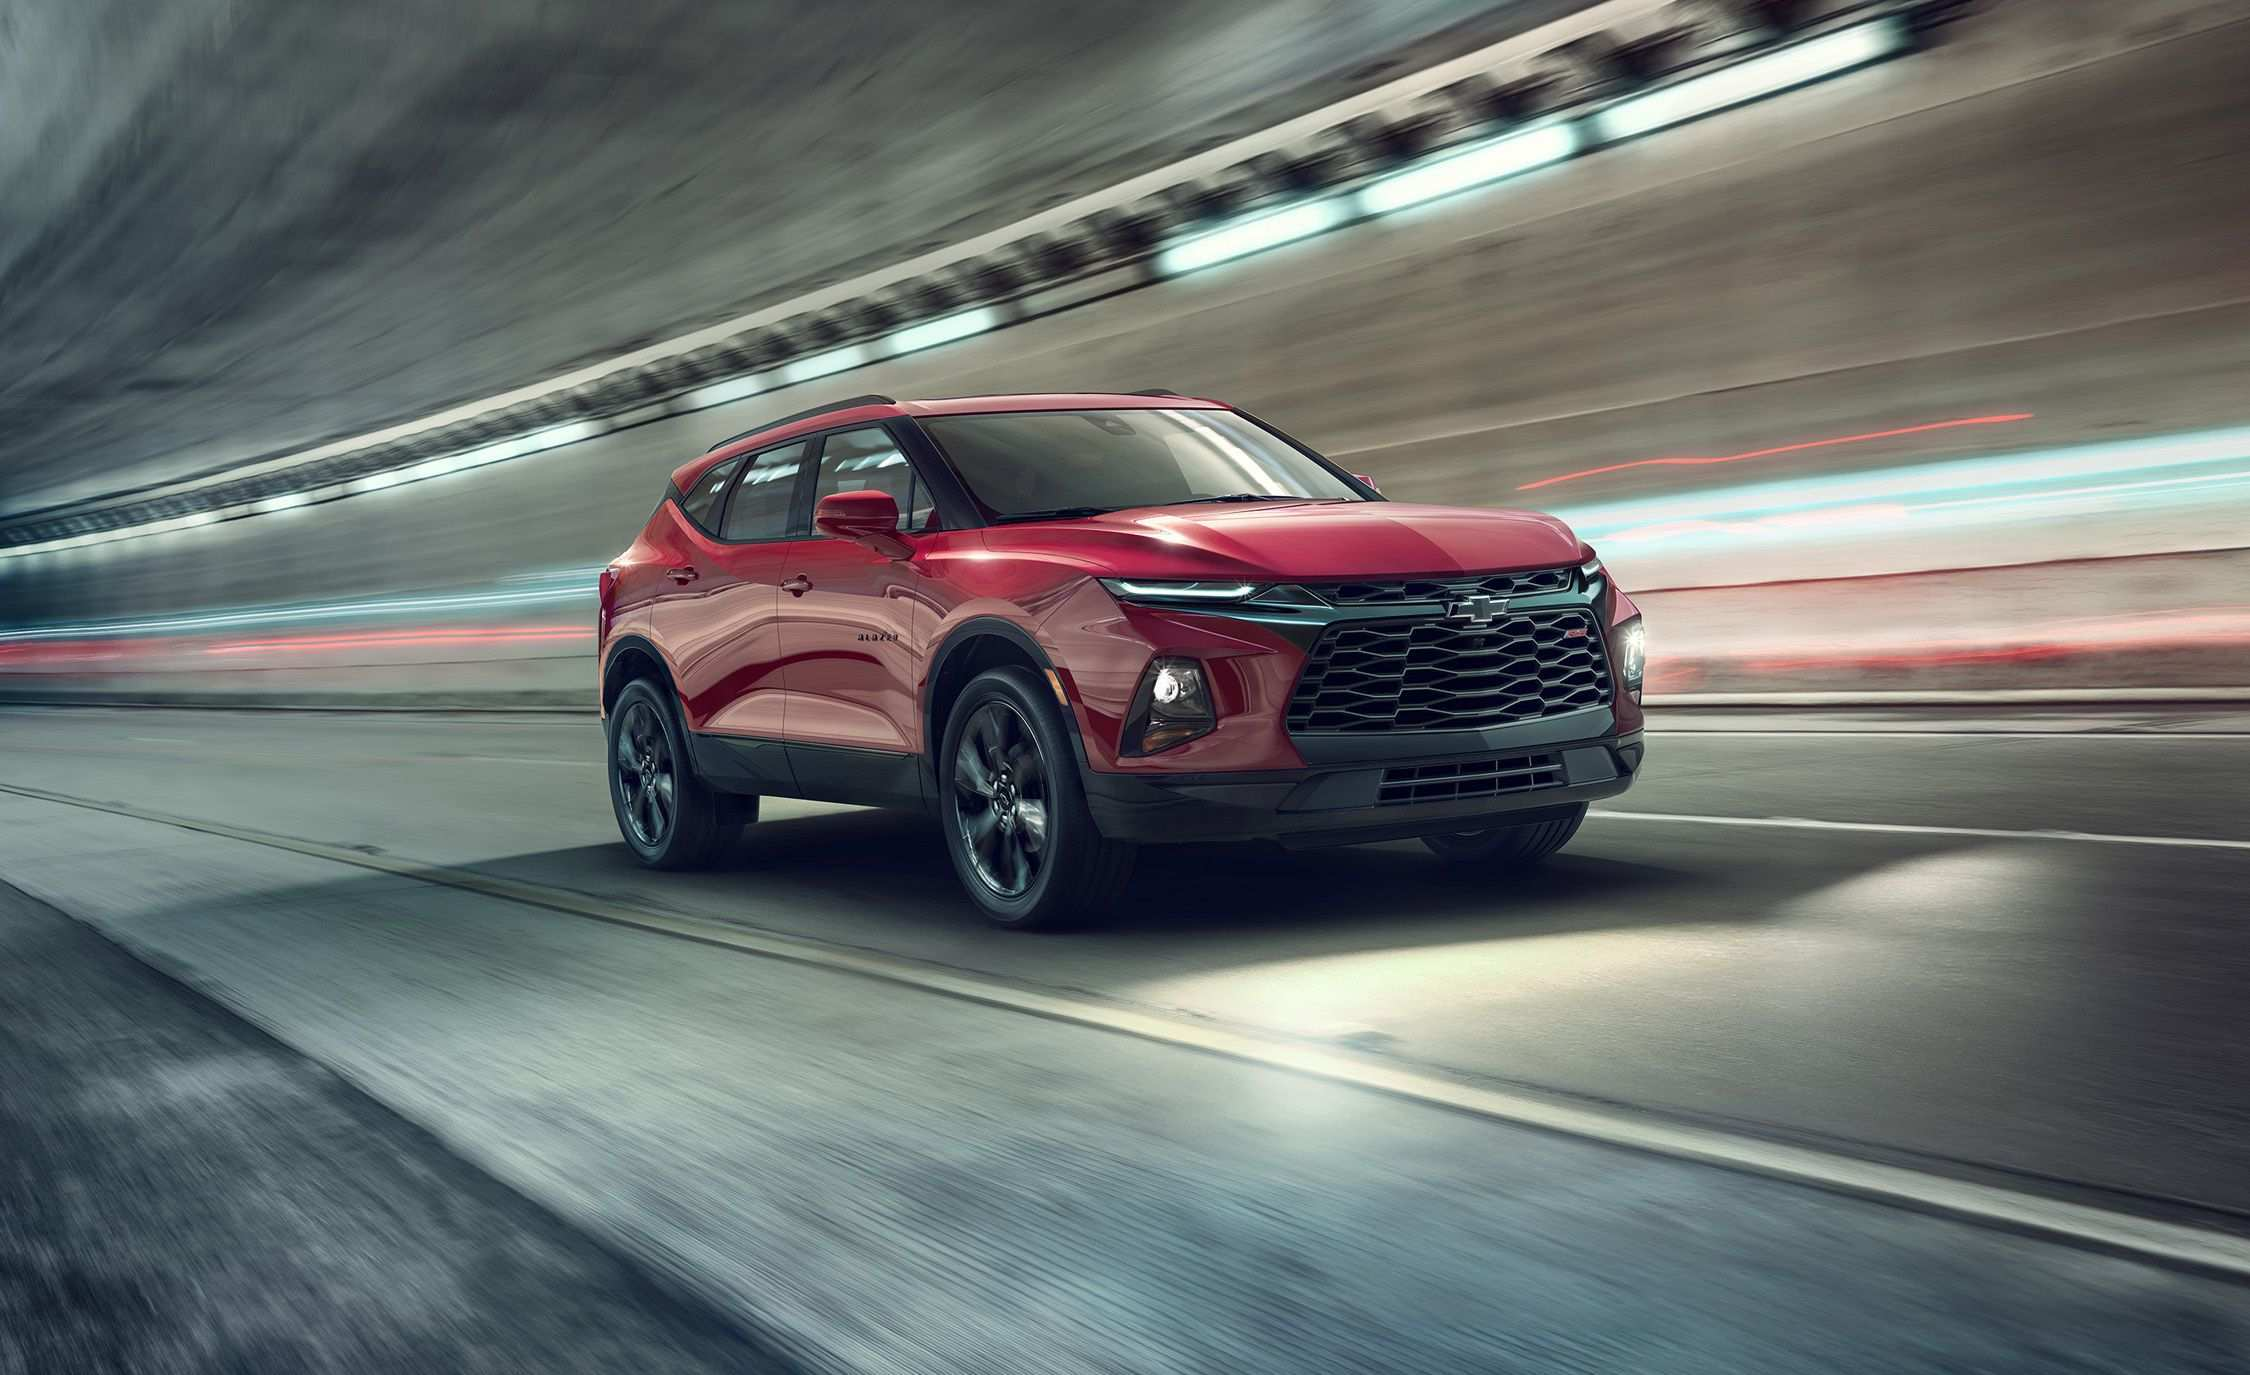 86 All New 2020 Chevy Blazer Redesign And Review